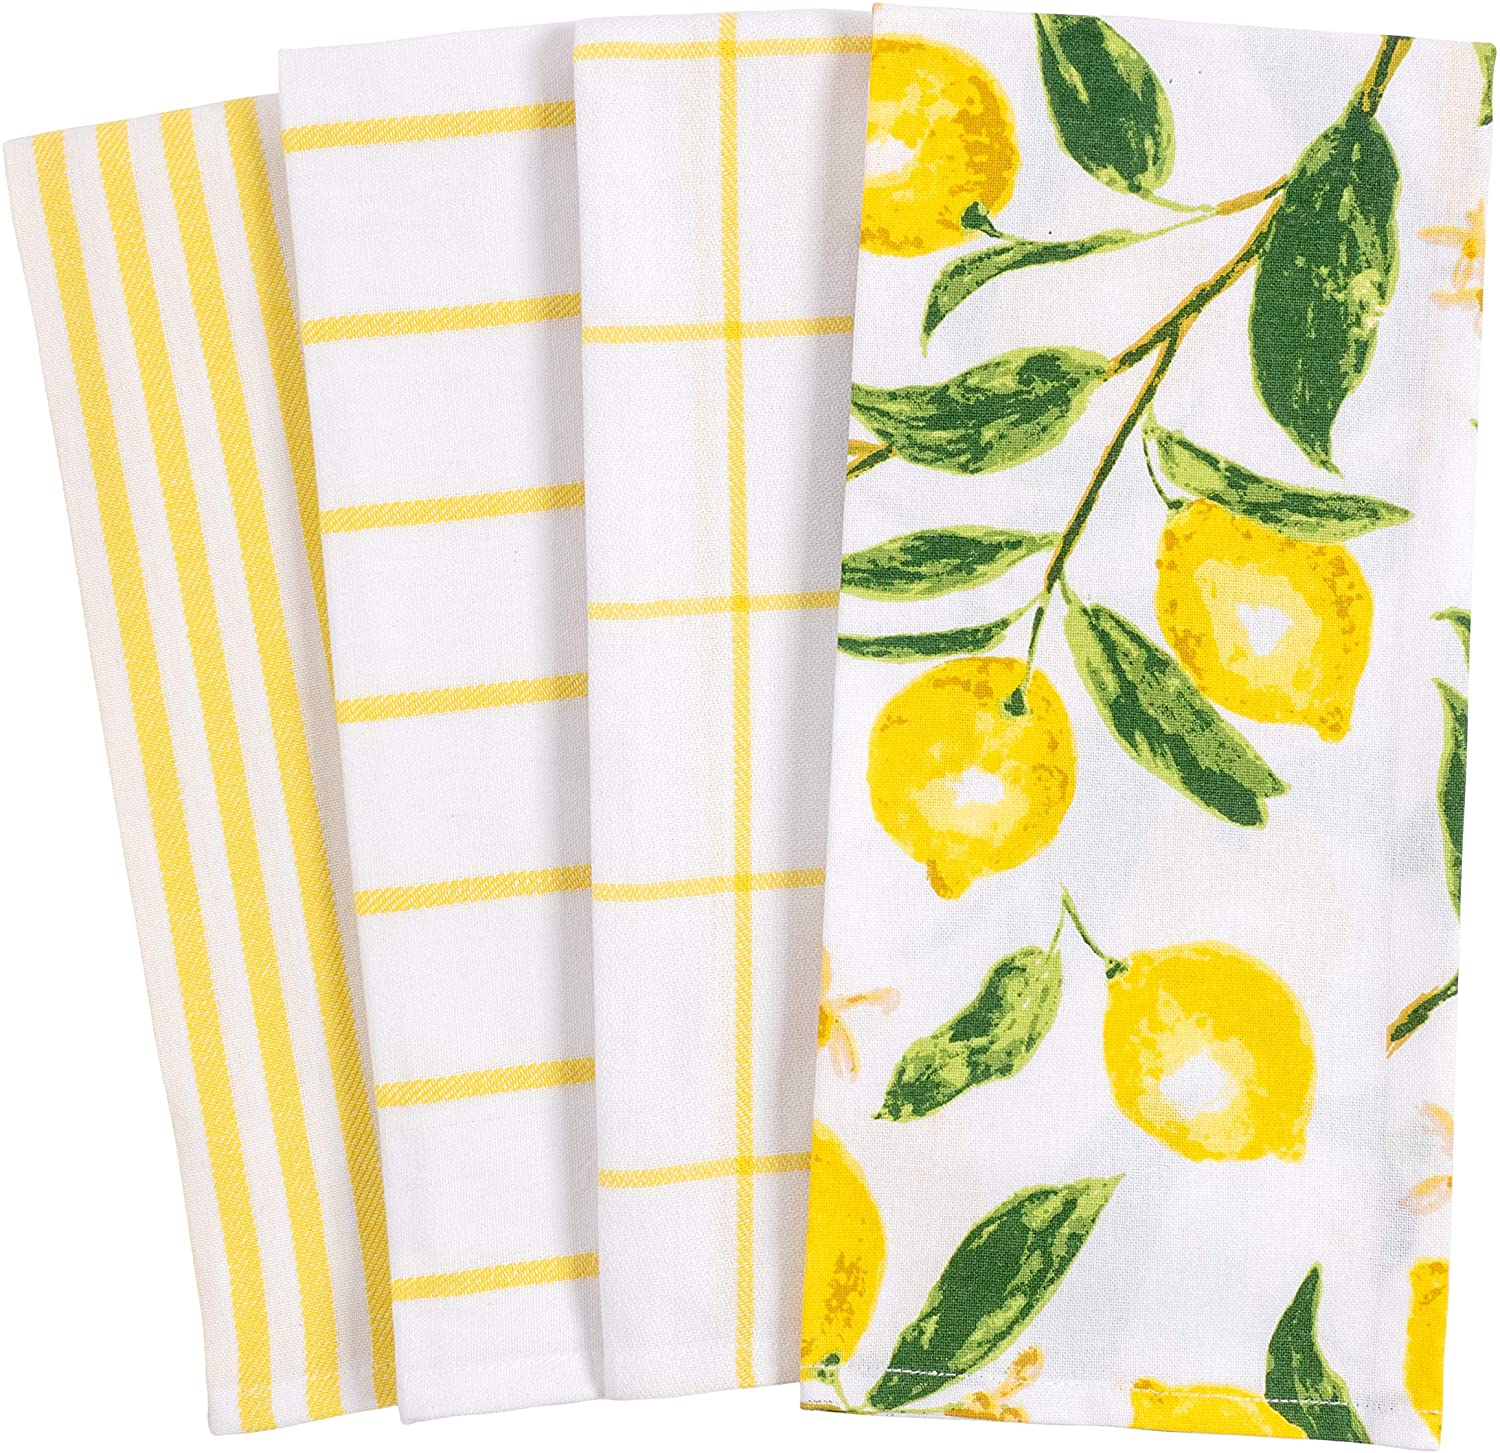 Lemon yellow and white dishtowels